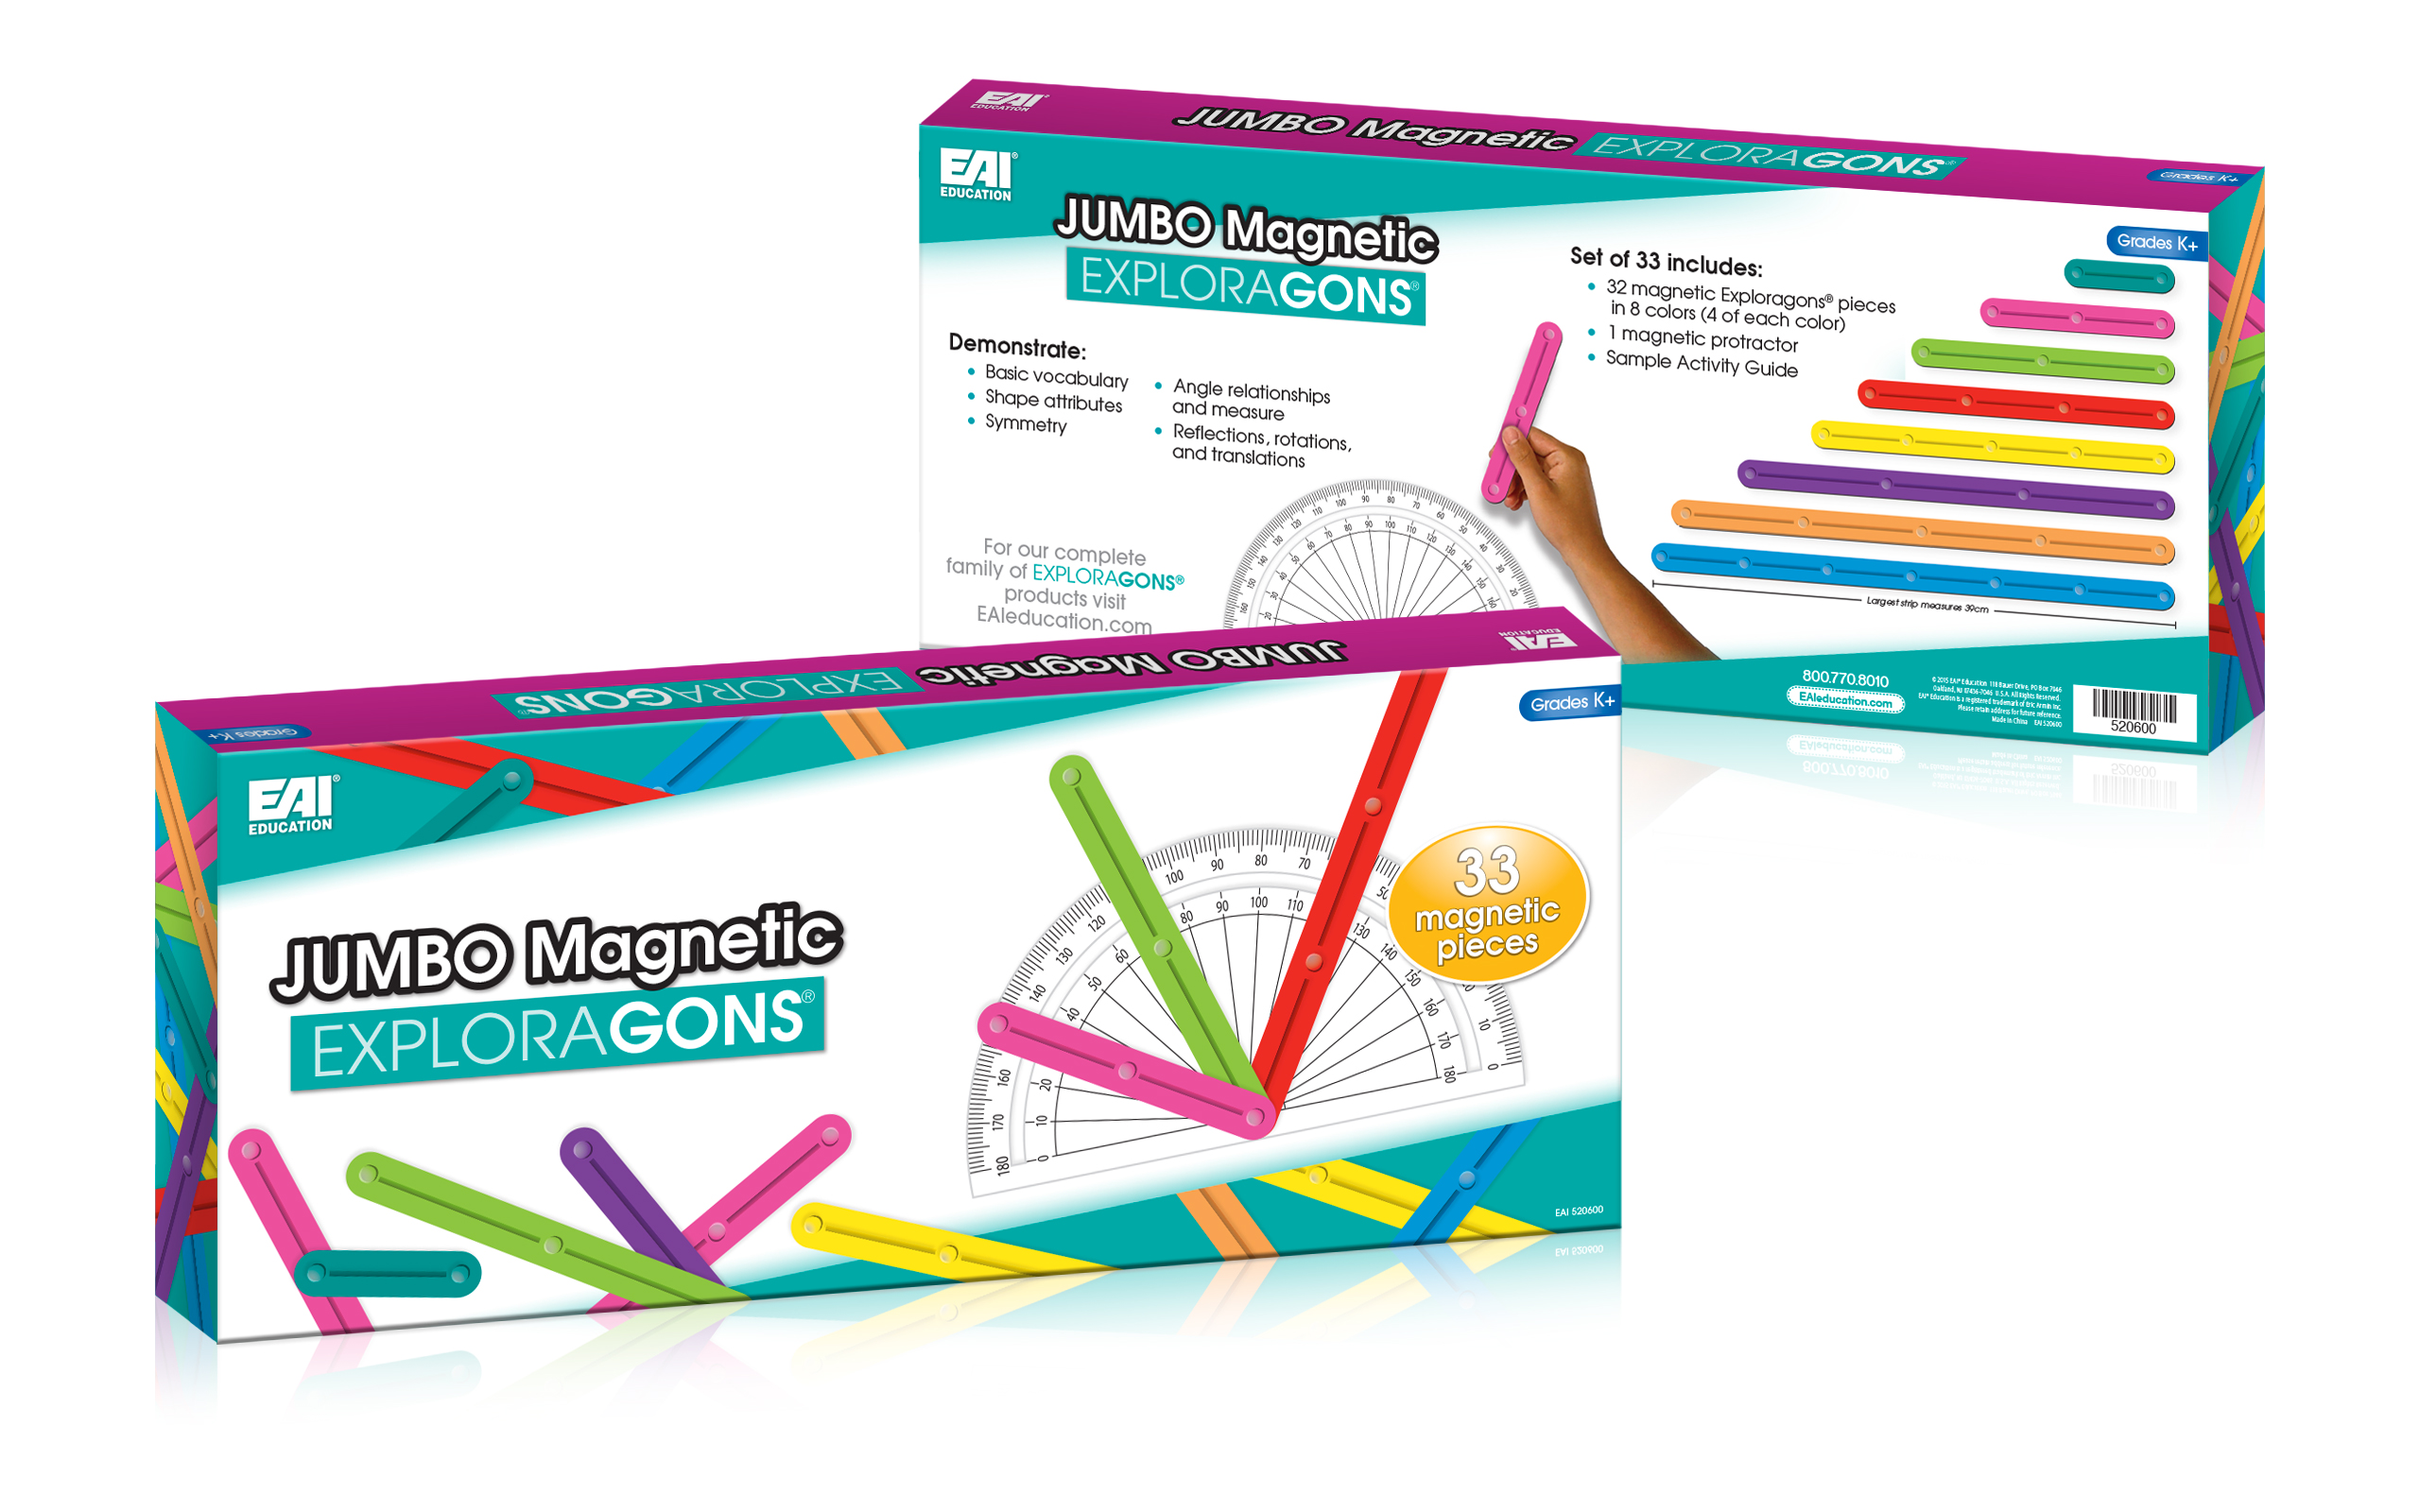 Jumbo Magnetic Exploragons Box